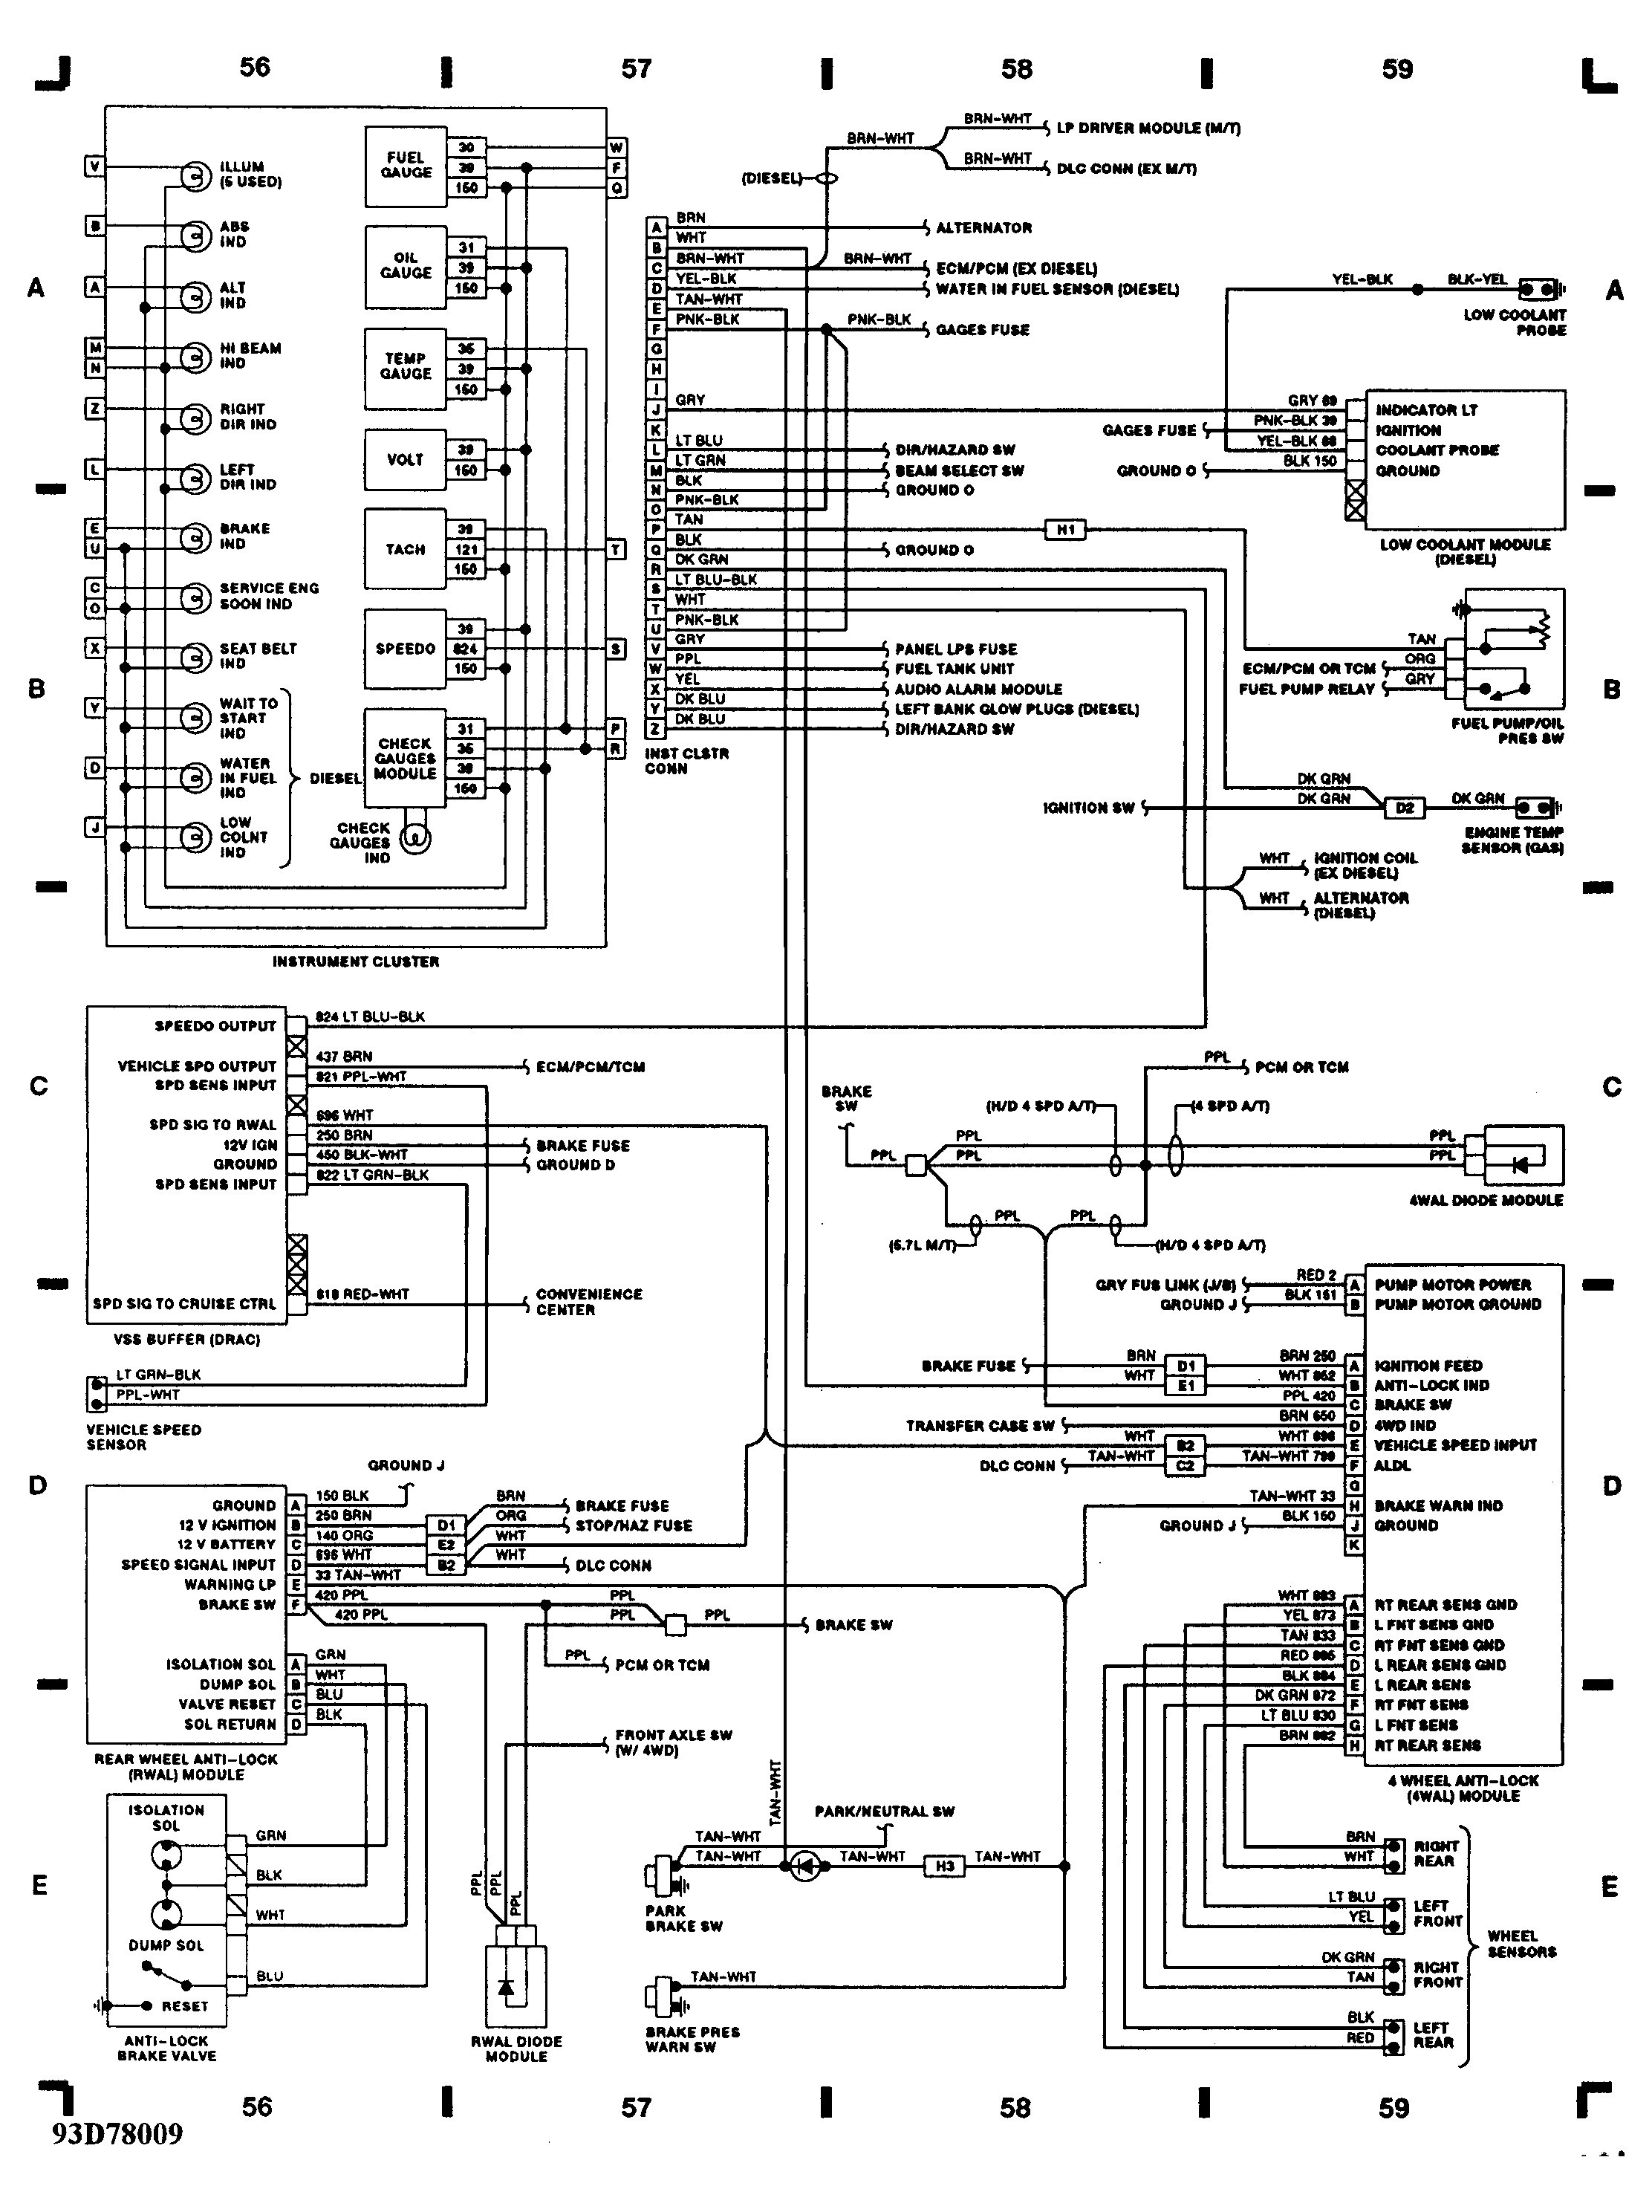 [SCHEMATICS_49CH]  BBA6E 2000 Chevy 1500 Pickup Ecm Wiring Diagram | Wiring Library | 2000 Chevy 1500 Pickup Ecm Wiring Diagram |  | Wiring Library